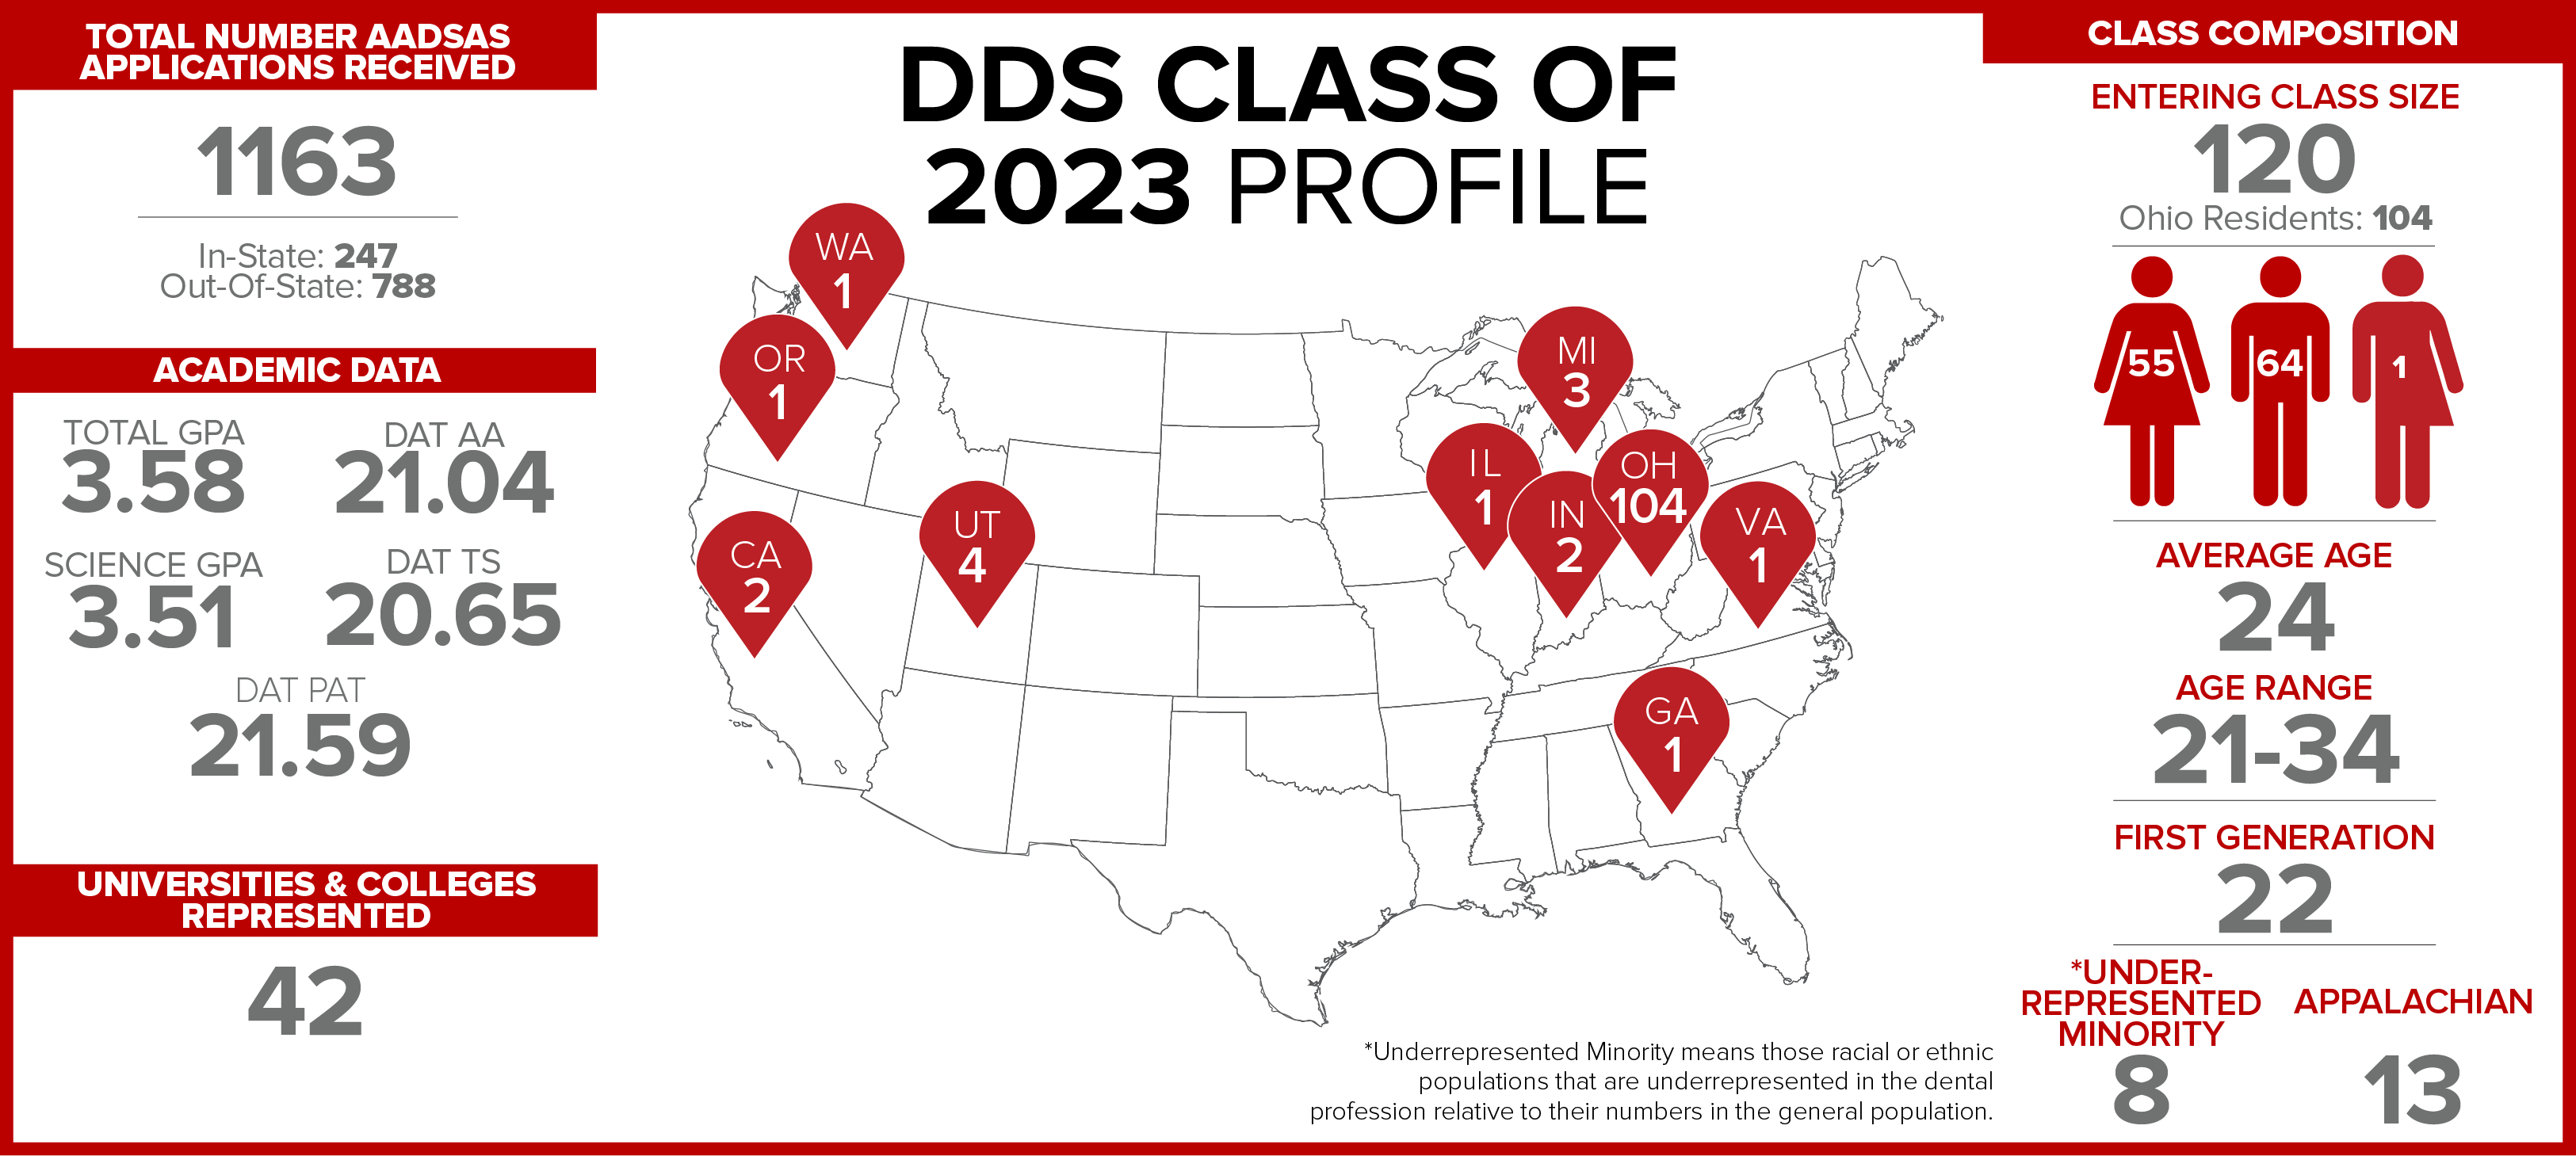 The Ohio State University College of Dentistry DDS Class of 2023 Profile